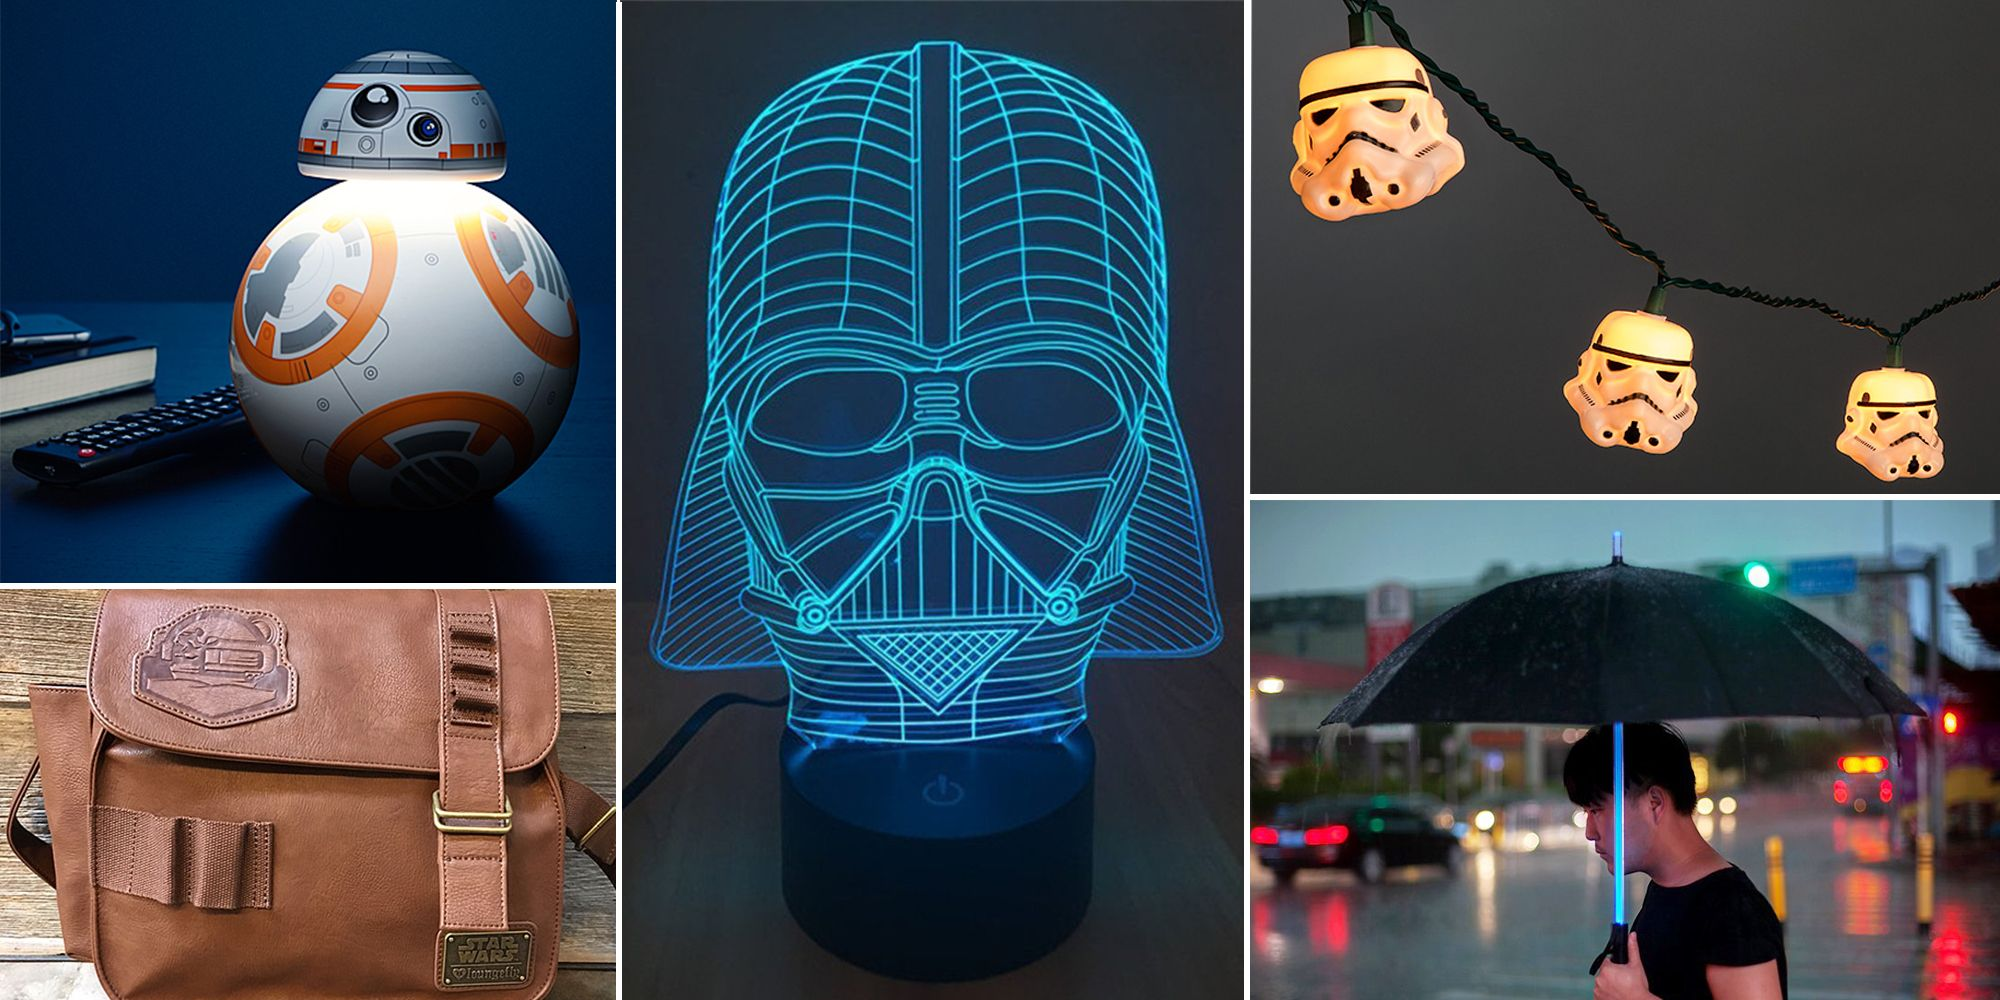 15 best star wars gifts for christmas 2018 quirky star wars gift ideas theyll love - What Do You Get A Wookie For Christmas